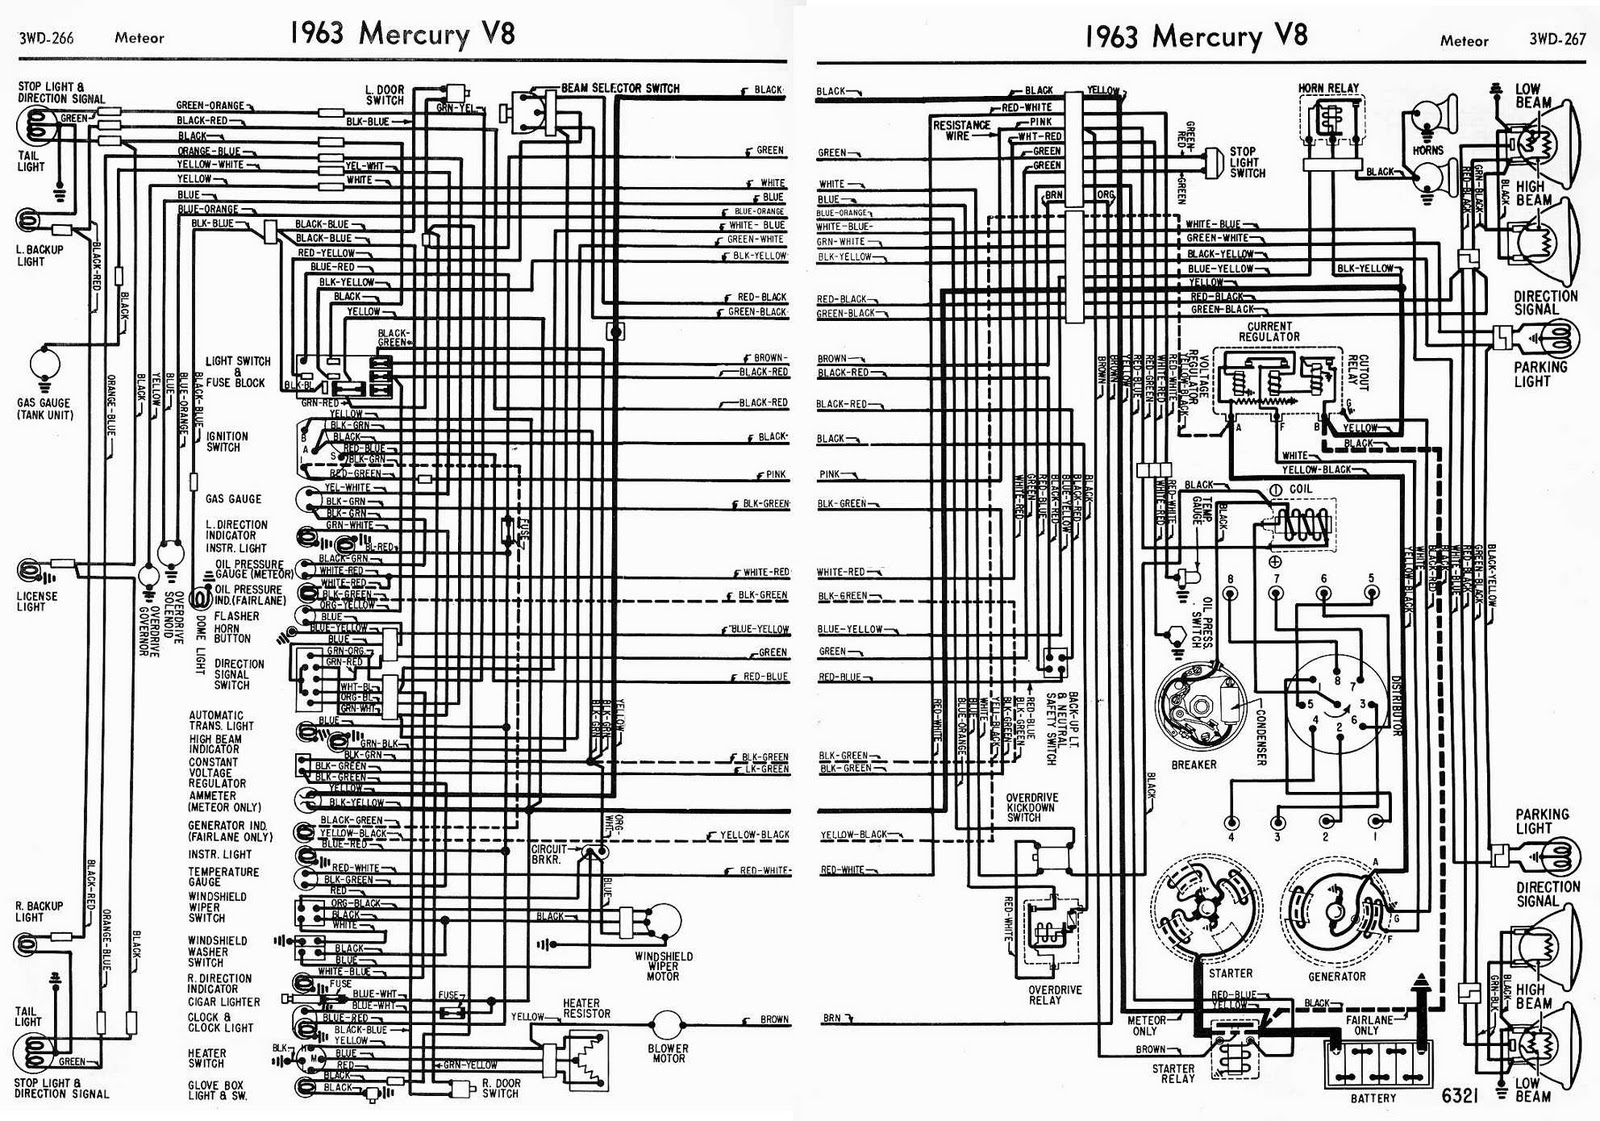 hight resolution of wrg 3427 1981 ford f100 wiring diagram1981 ford econoline van wiring diagram electrical wiring diagrams